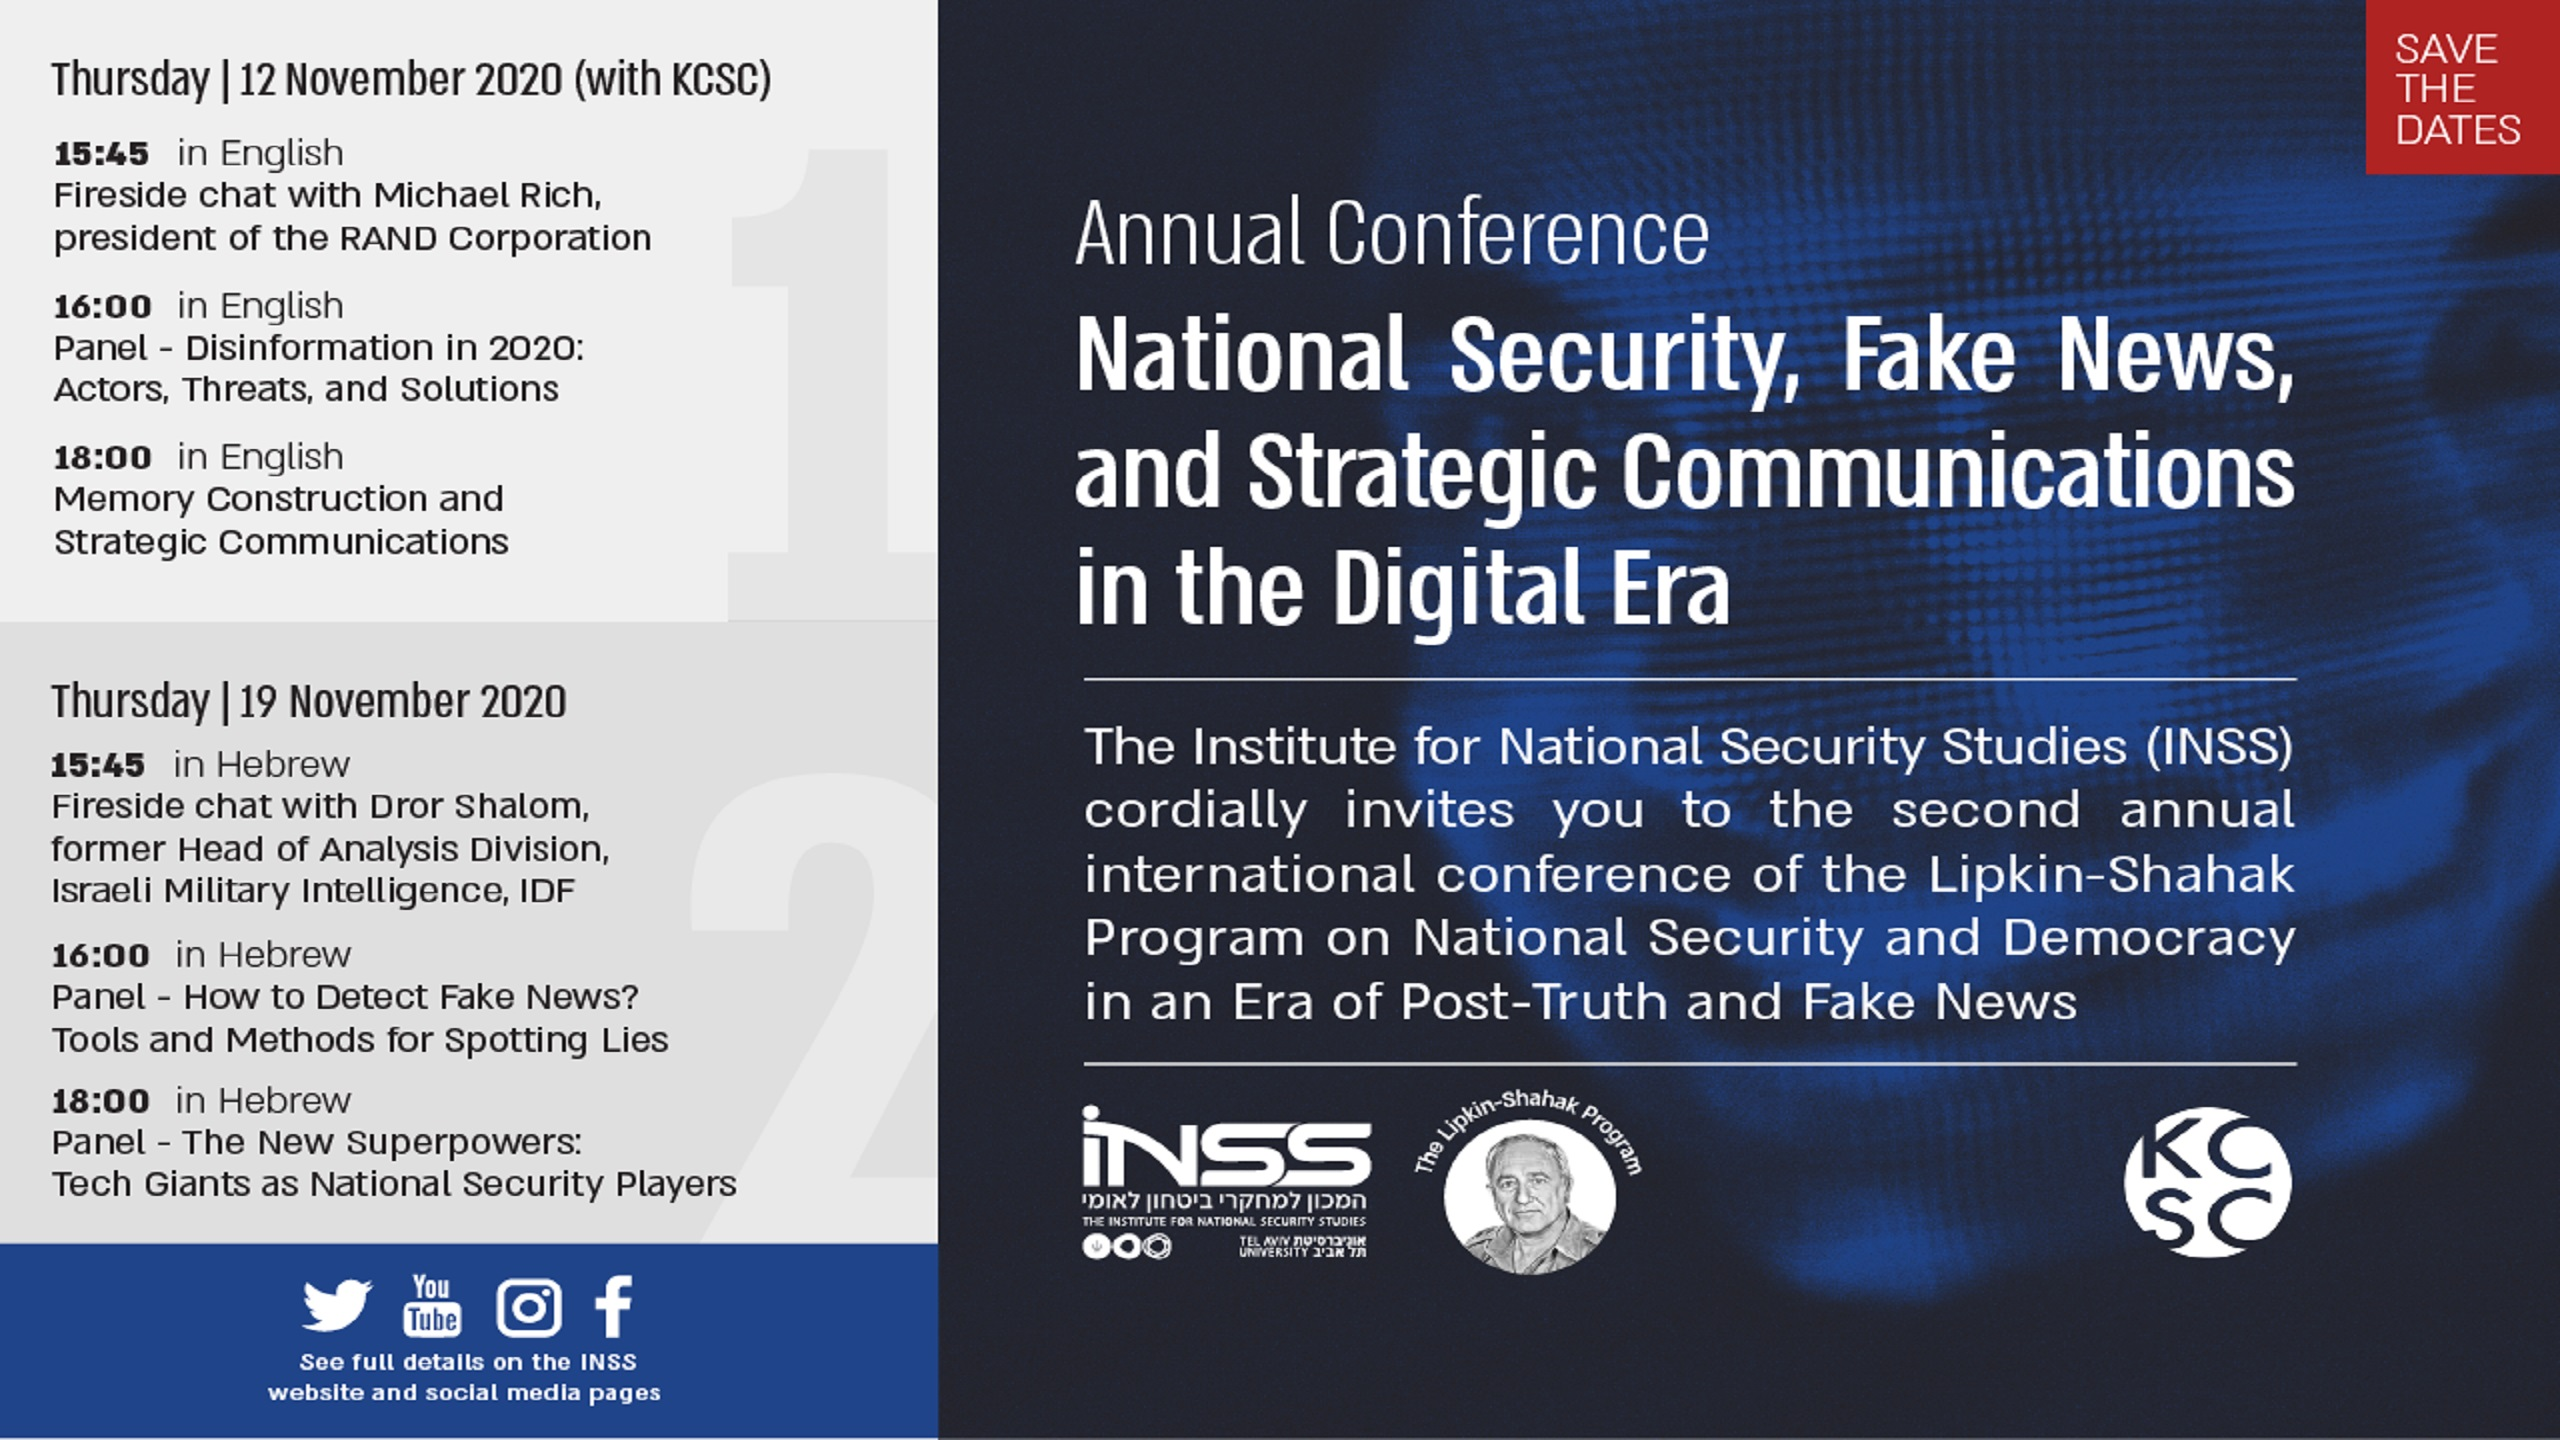 National Security, Fake News, and Strategic Communications in the Digital Era